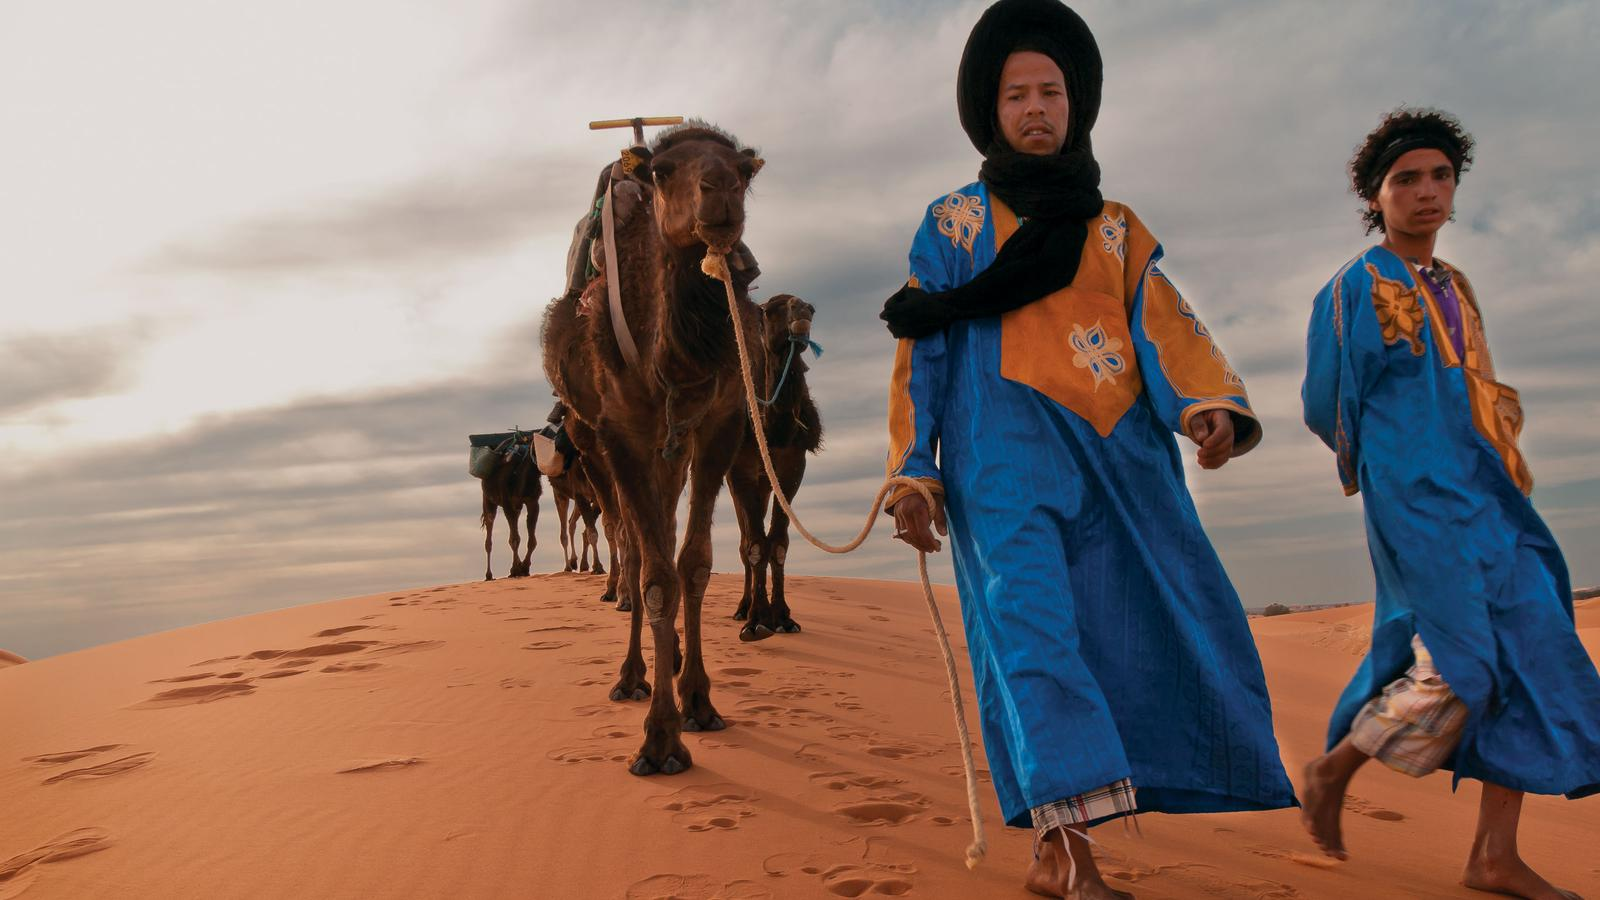 morocco middle eastern singles Across north africa and the middle east more contained protests have been simmering in the northern rif region of morocco please contact chatham house.